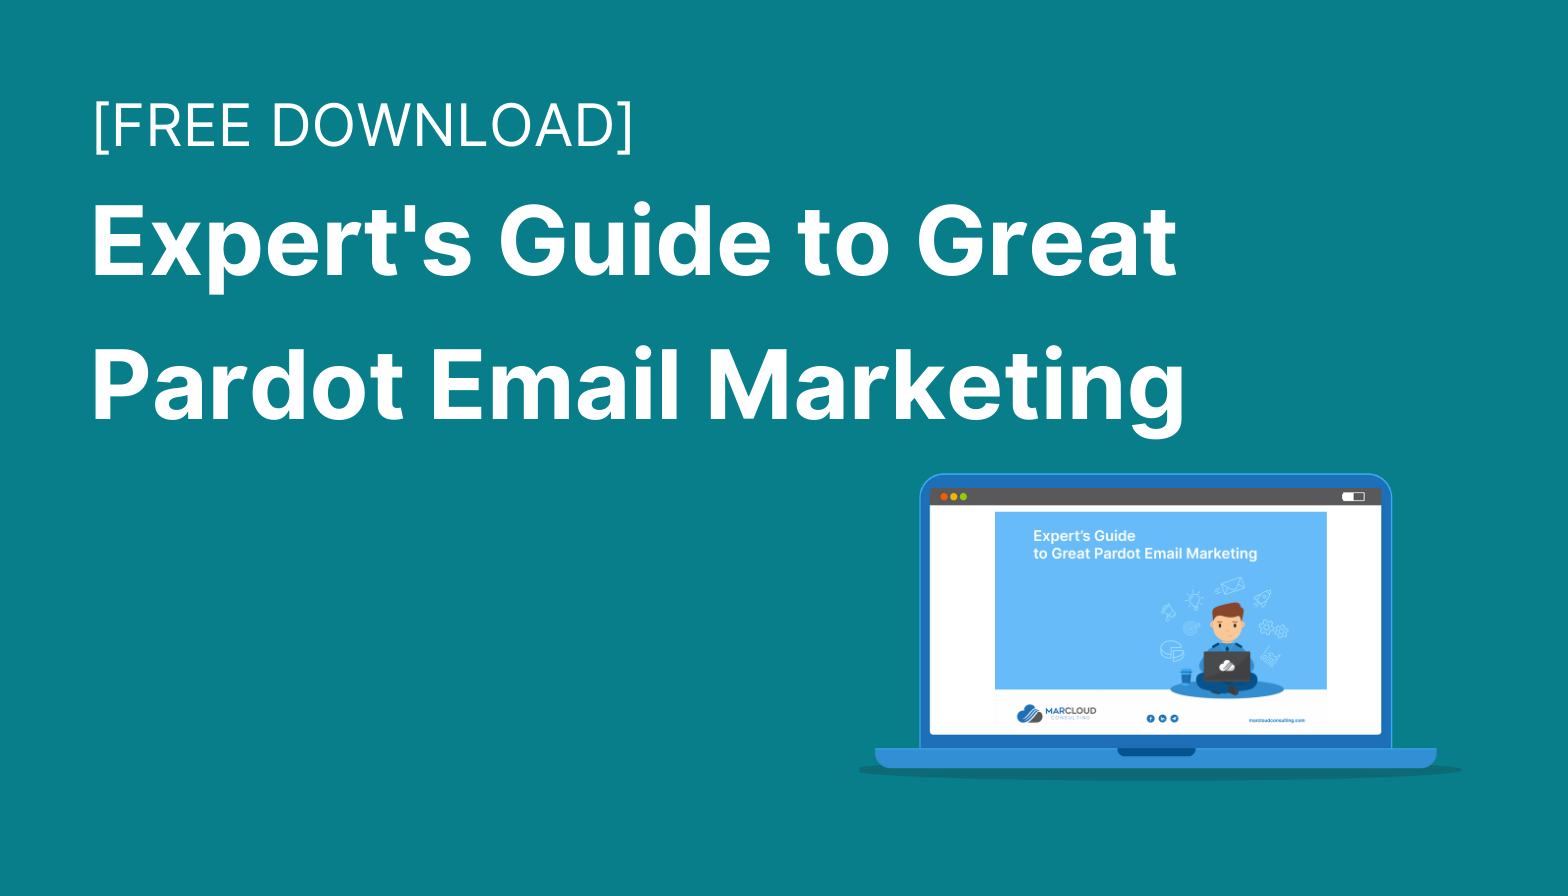 Feature image: (Free download) Expert's guide to great Pardot email marketing